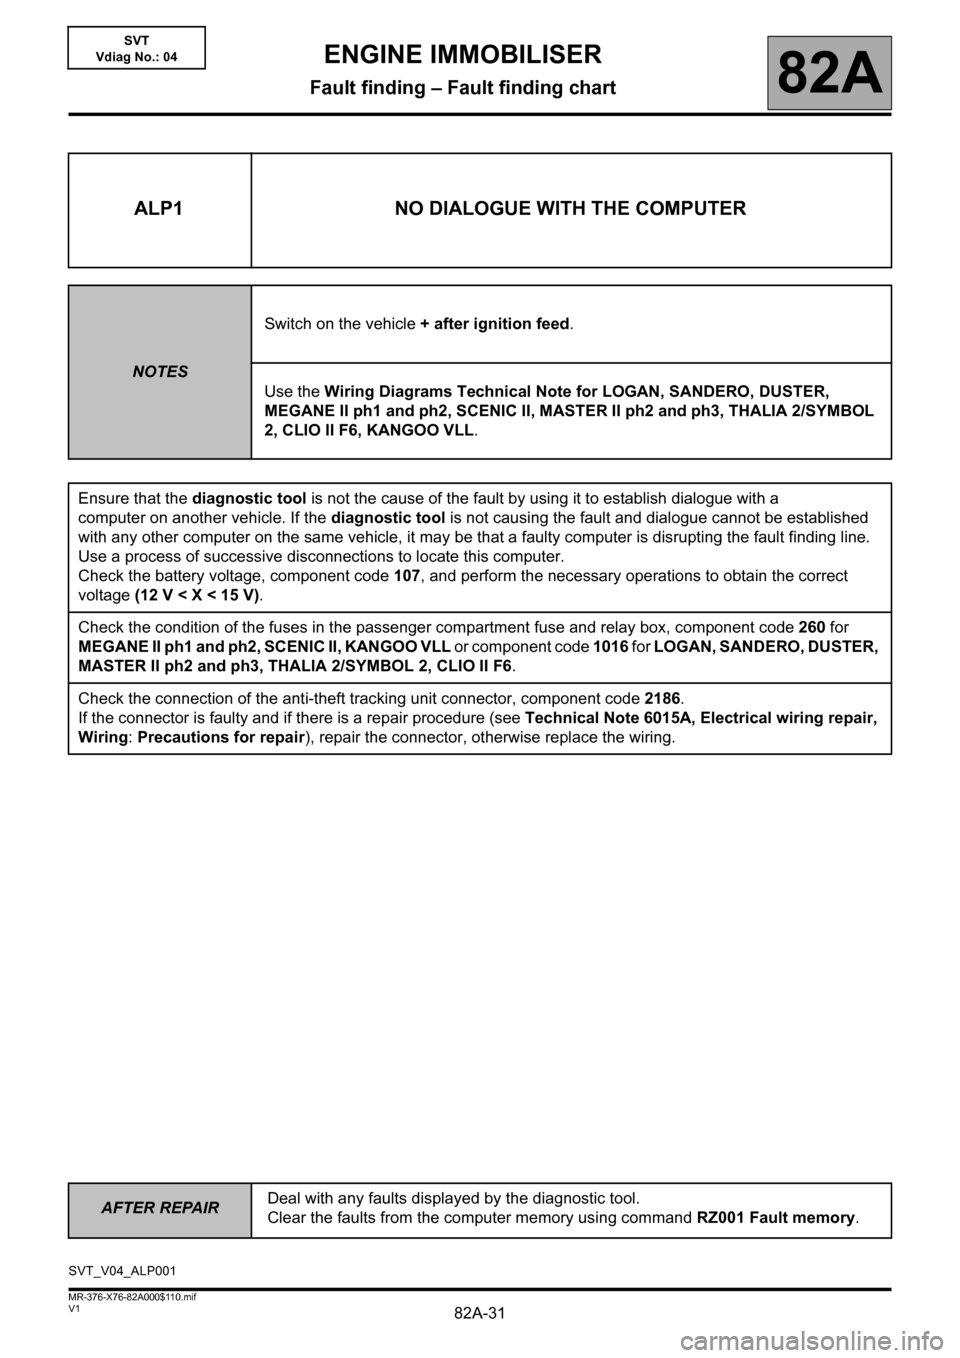 RENAULT KANGOO 2013 X61 / 2.G Engine Immobiliser Workshop Manual, Page 31